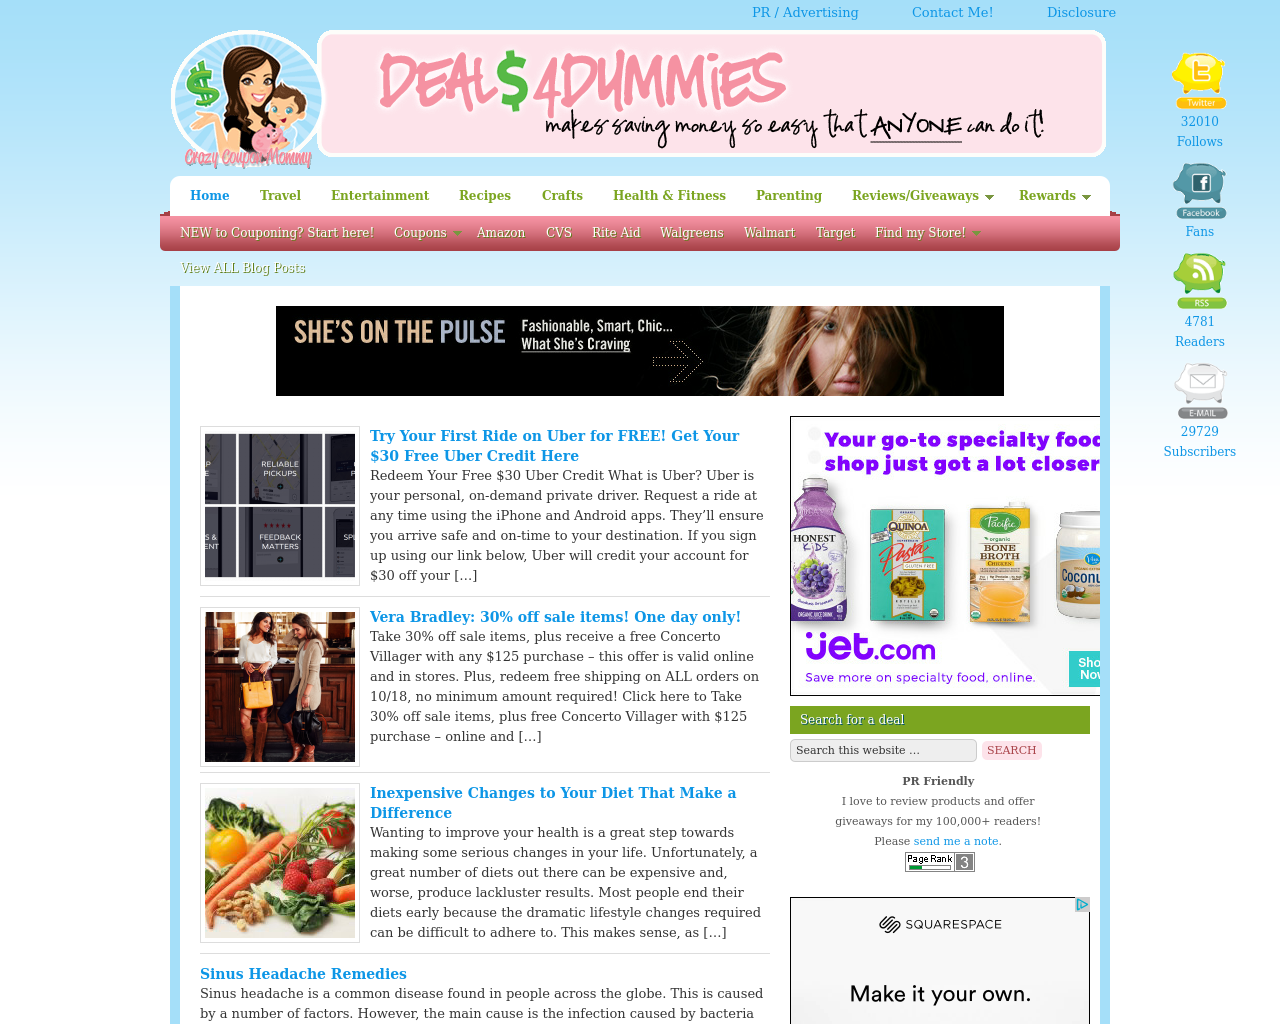 DEALS-4-DUMMIES-Advertising-Reviews-Pricing